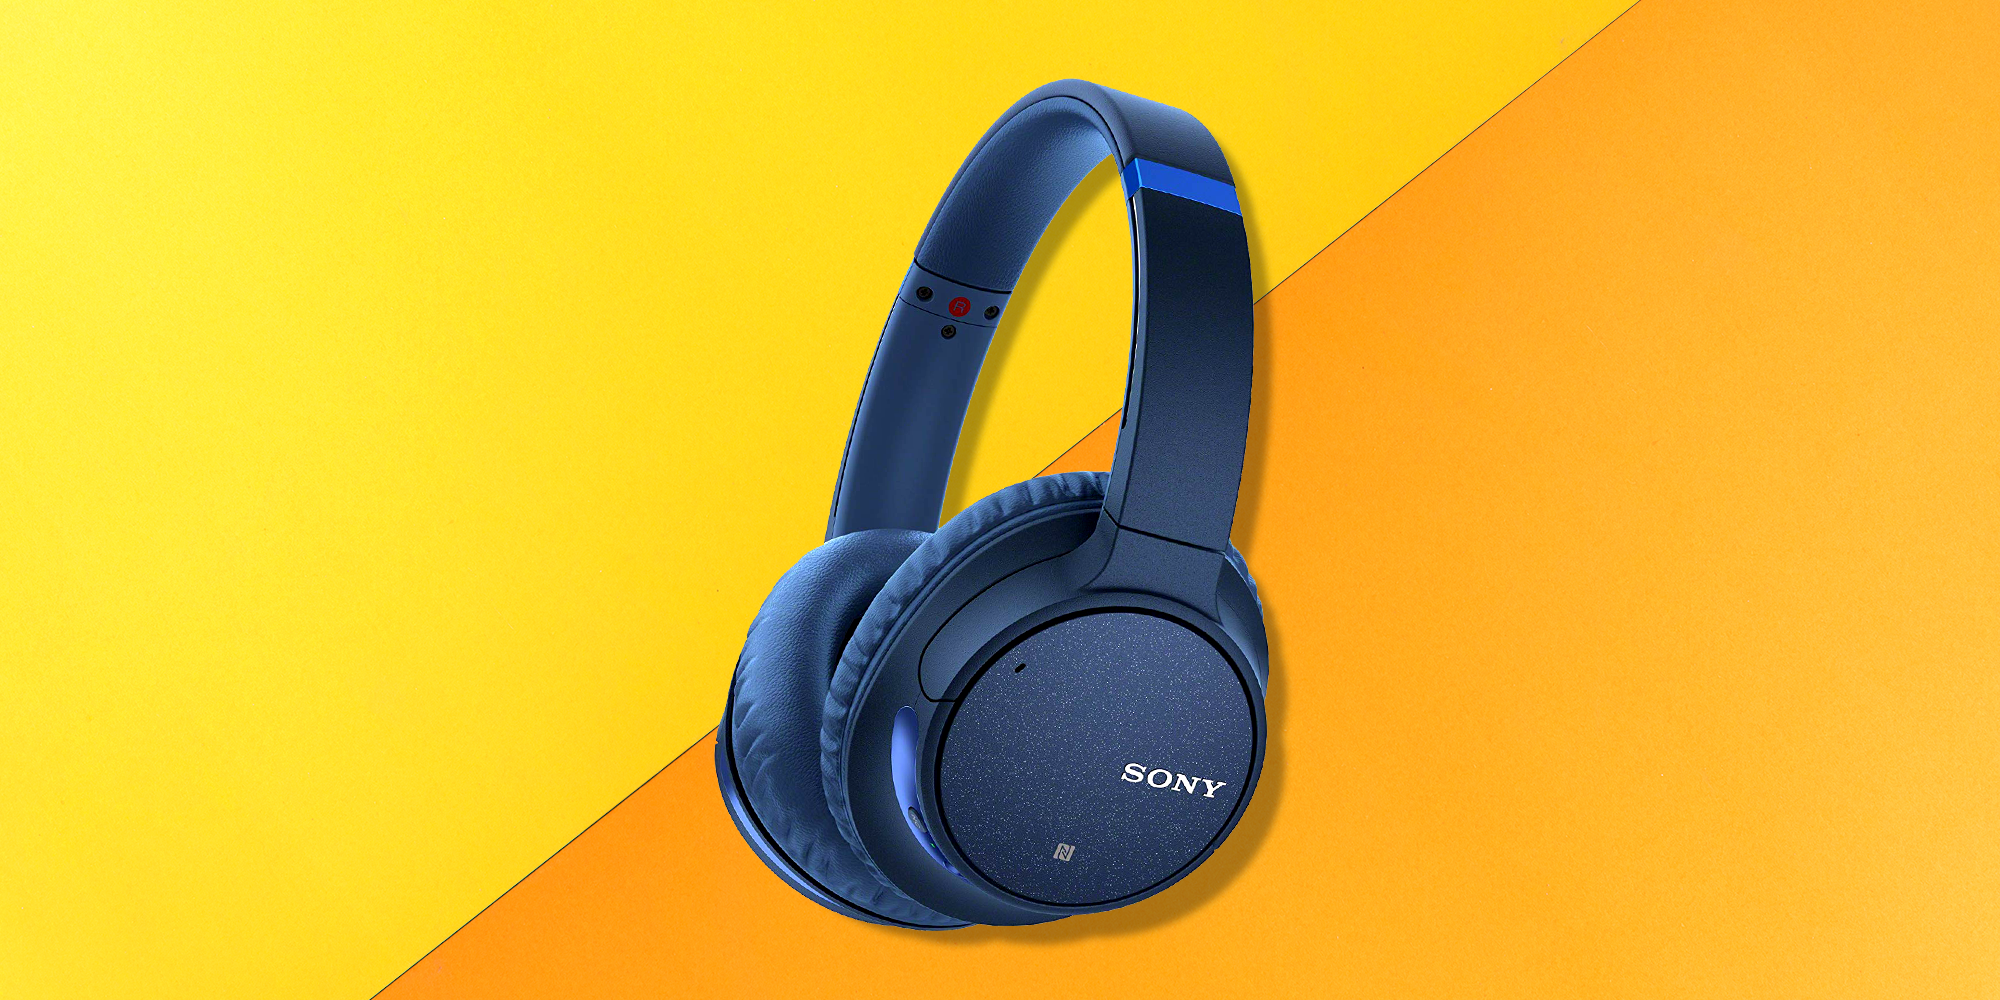 Sony Wireless Noise-Cancelling Headphones Are On Sale For $80 Off On Amazon